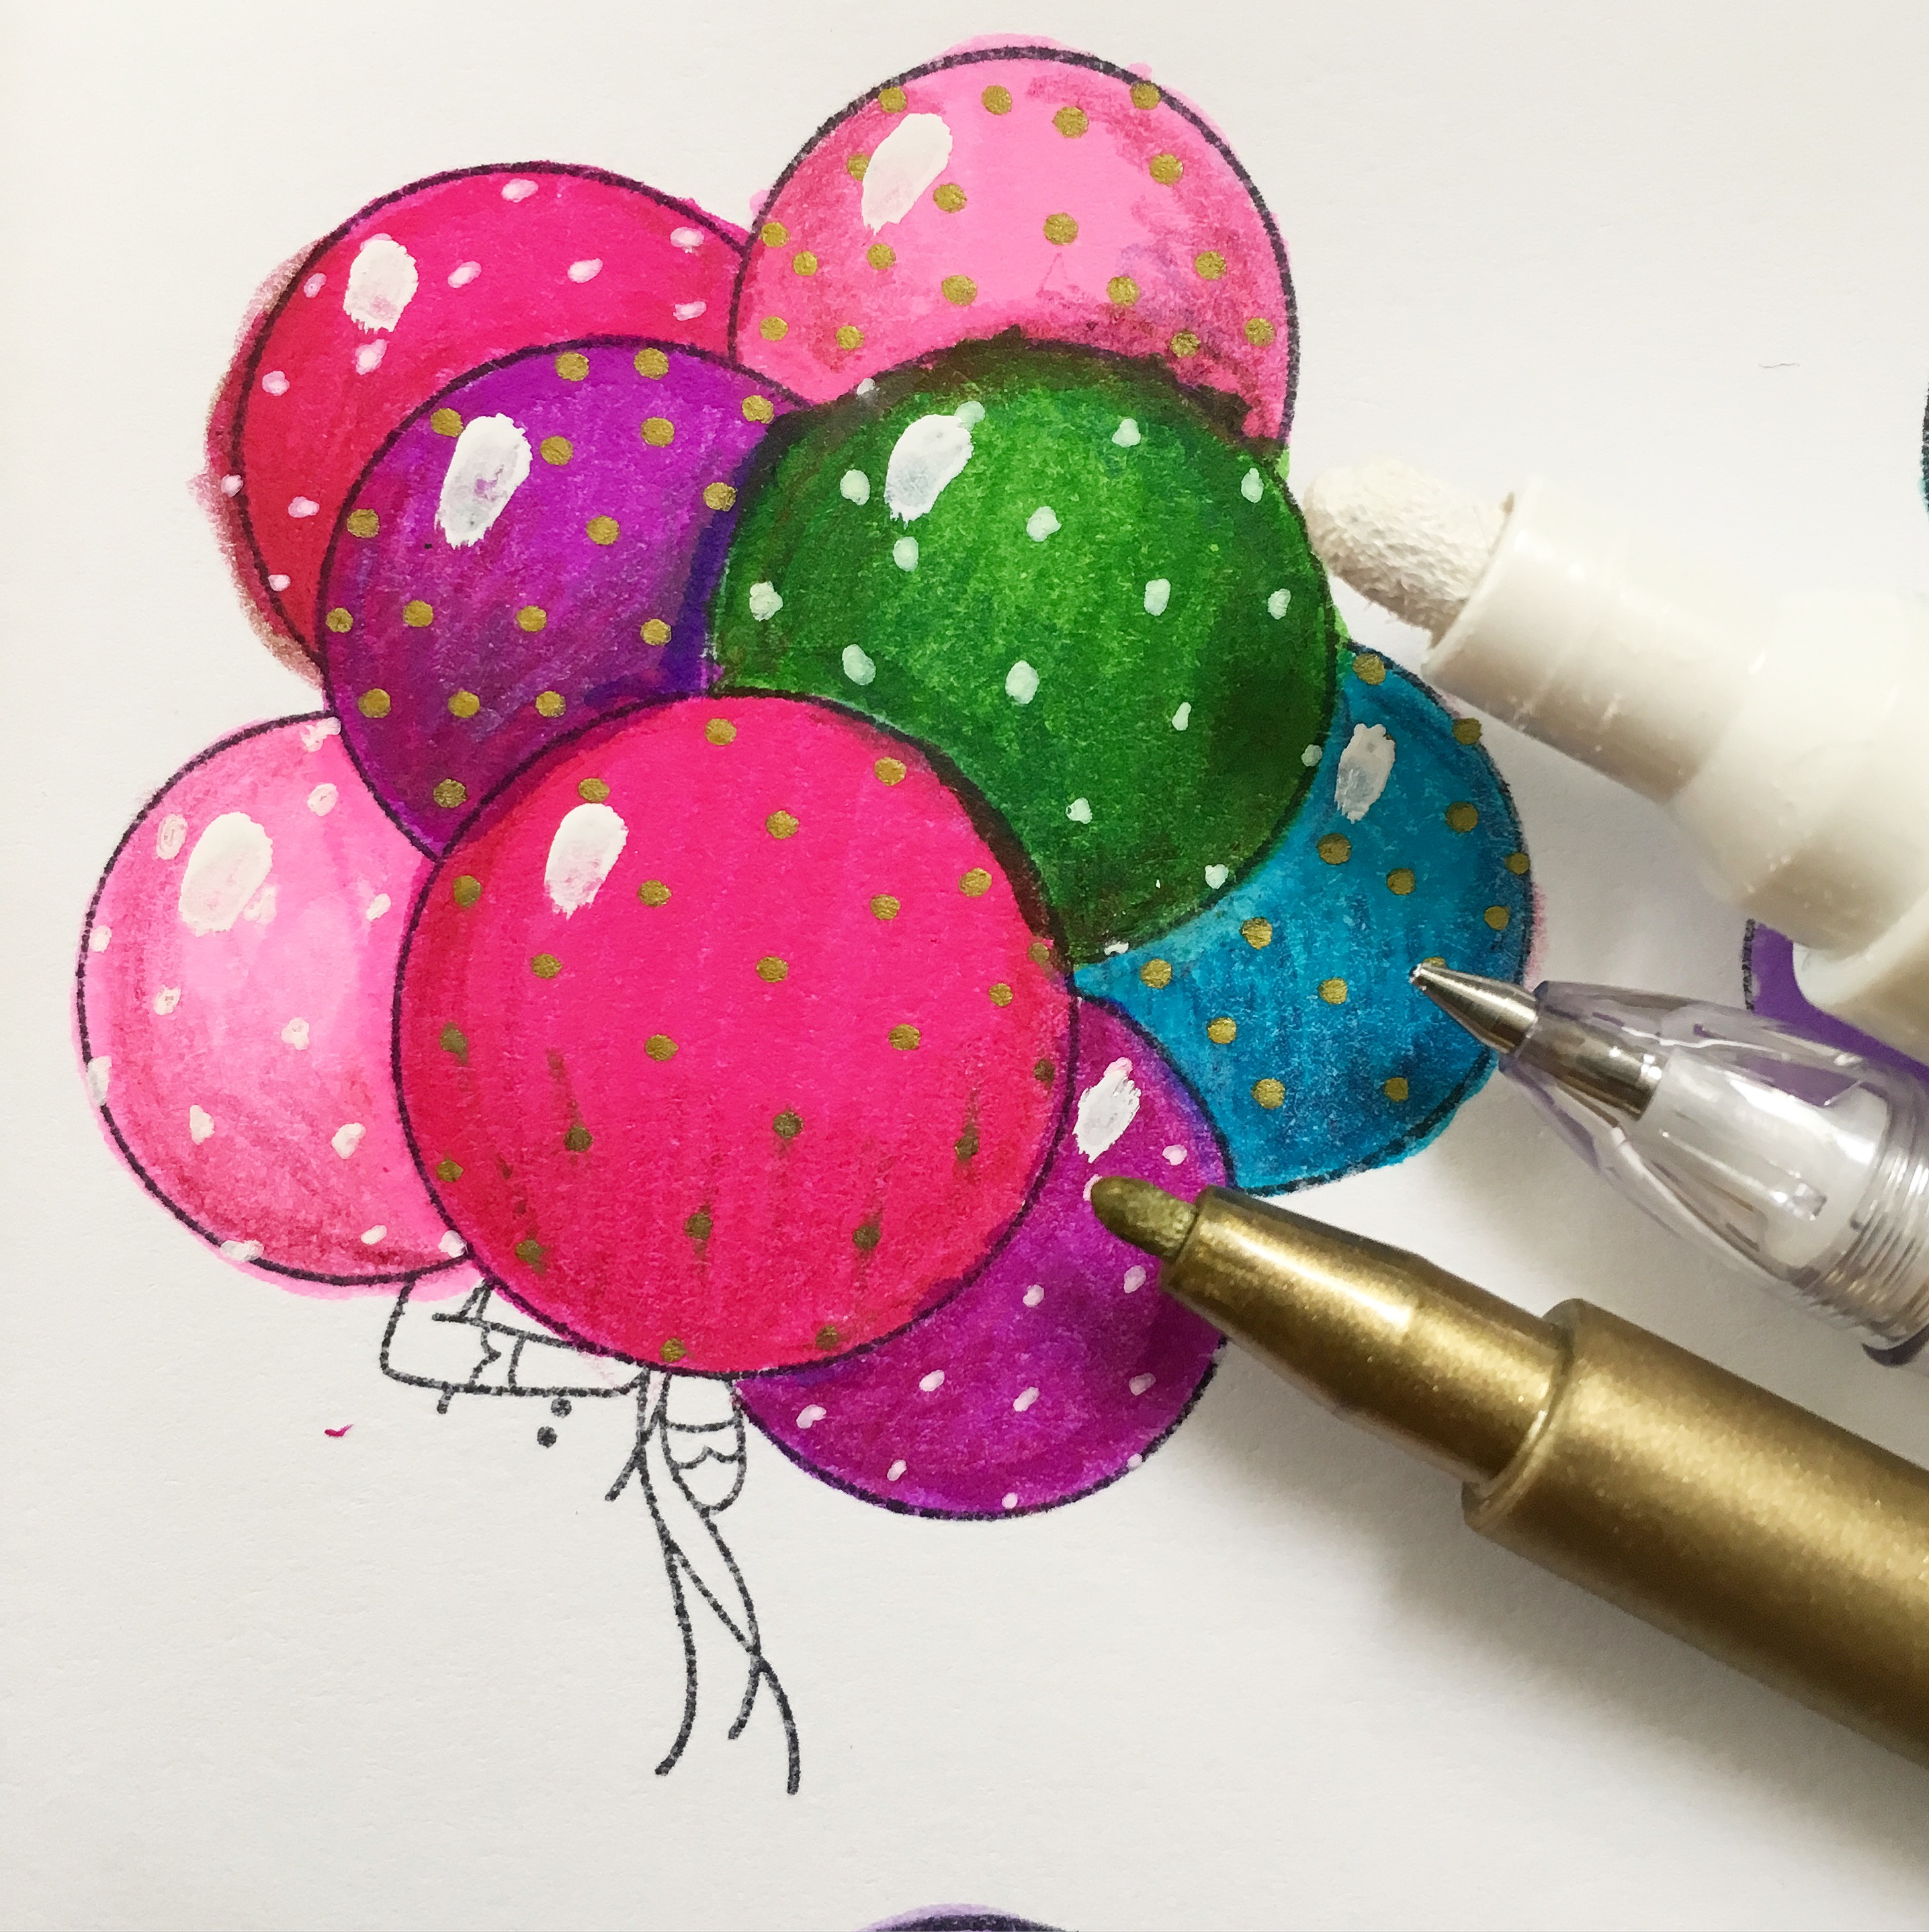 colourful balloons, hand drawn, in pink, purple, green and blue